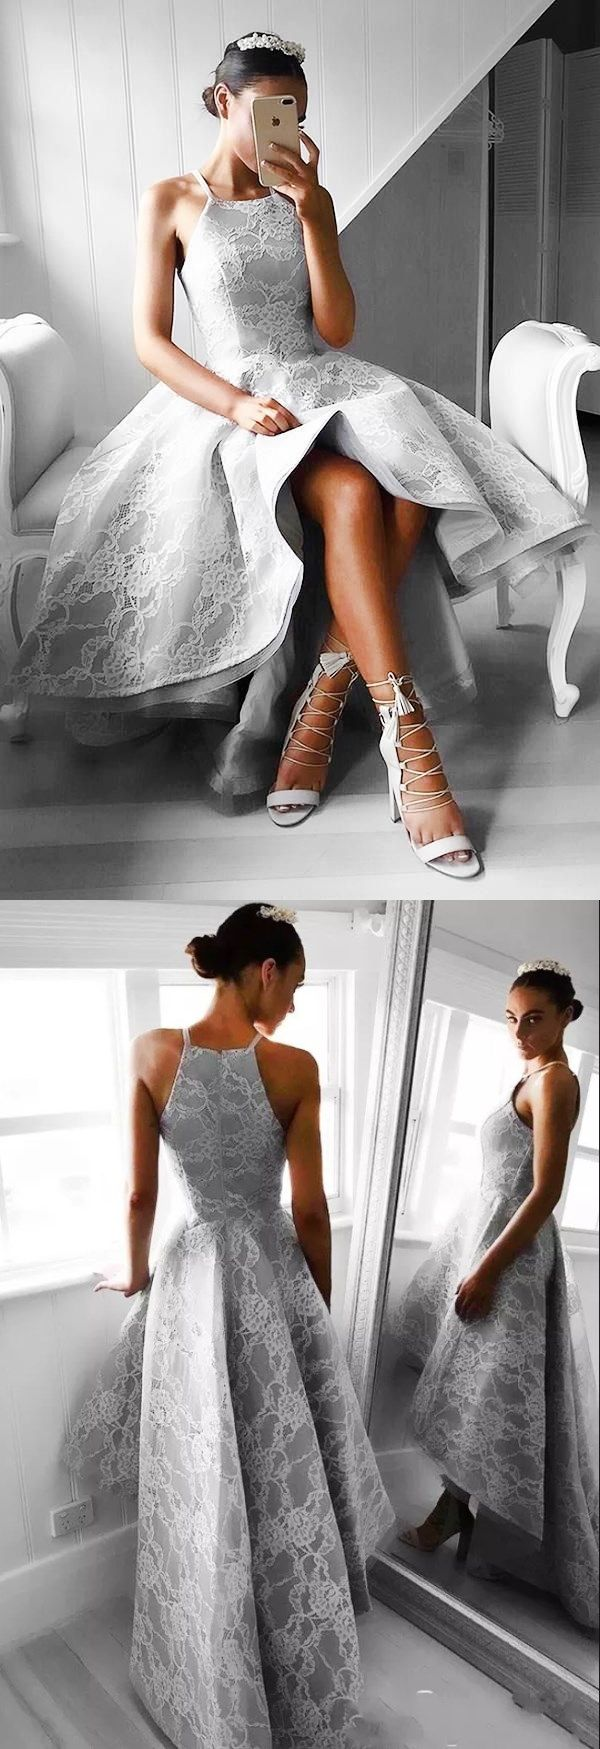 Charming High Low A Line Spaghetti Straps Long Gray Lace Prom Dress #highlowpromdress #graypromdresses #prom #dresses #longpromdress #promdress #eveningdress #promdresses #partydresses #2018promdresses